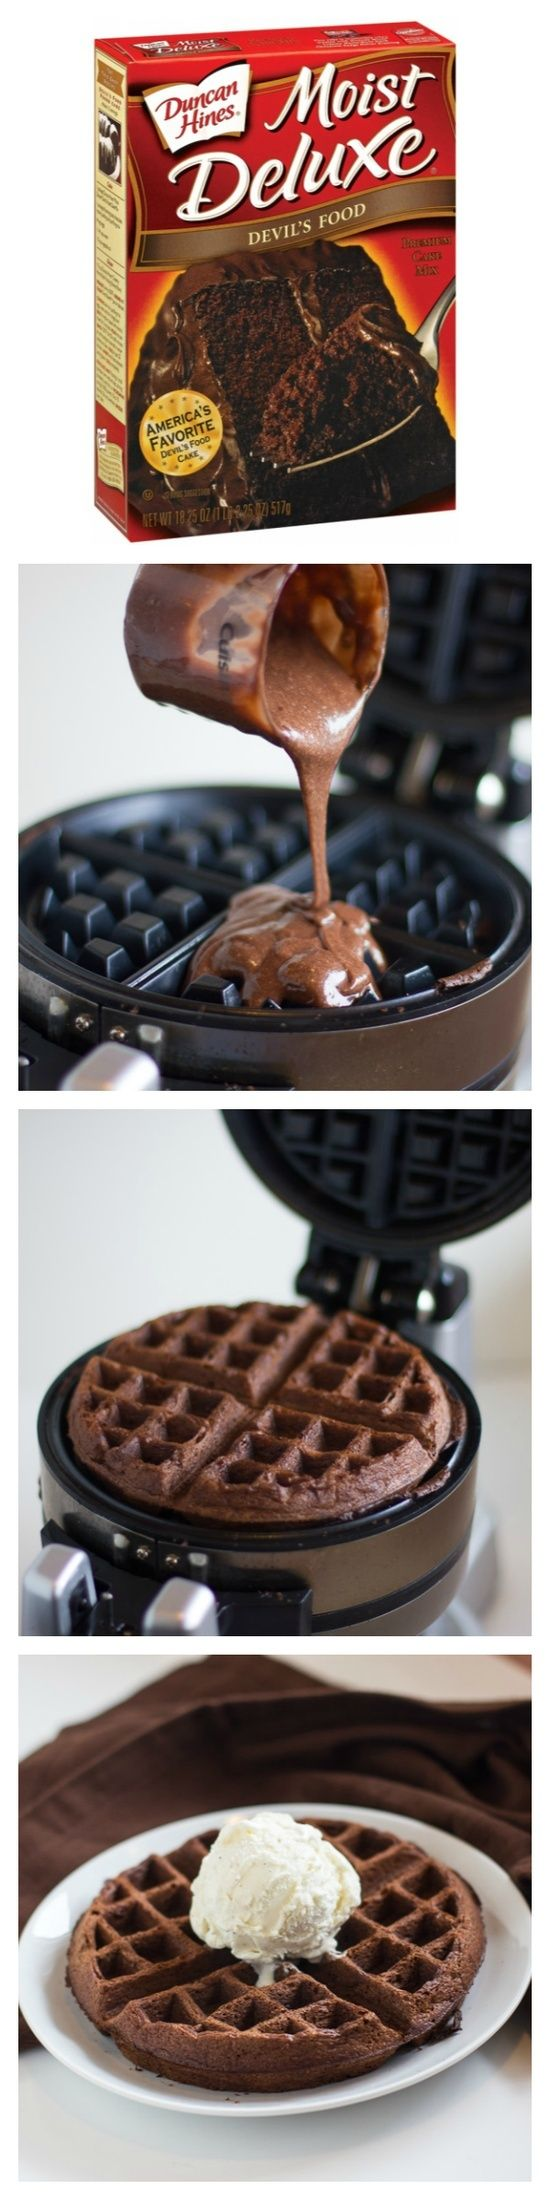 Cake Mix Waffles - make the cake batter as instructed on the box then make them just like you do waffles. Top with your favorite ice cream!. WHAT A GREAT IDEA!!!